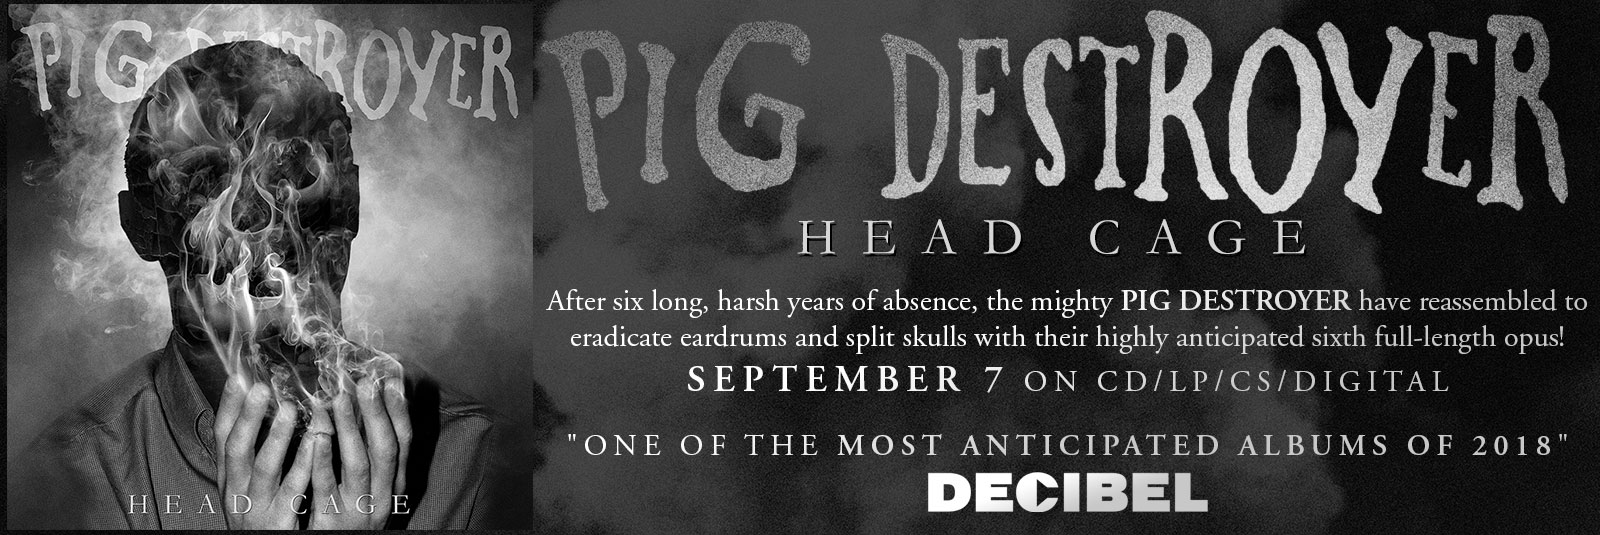 pig-destroyer-head-cage-grindcore-relapse-september-07